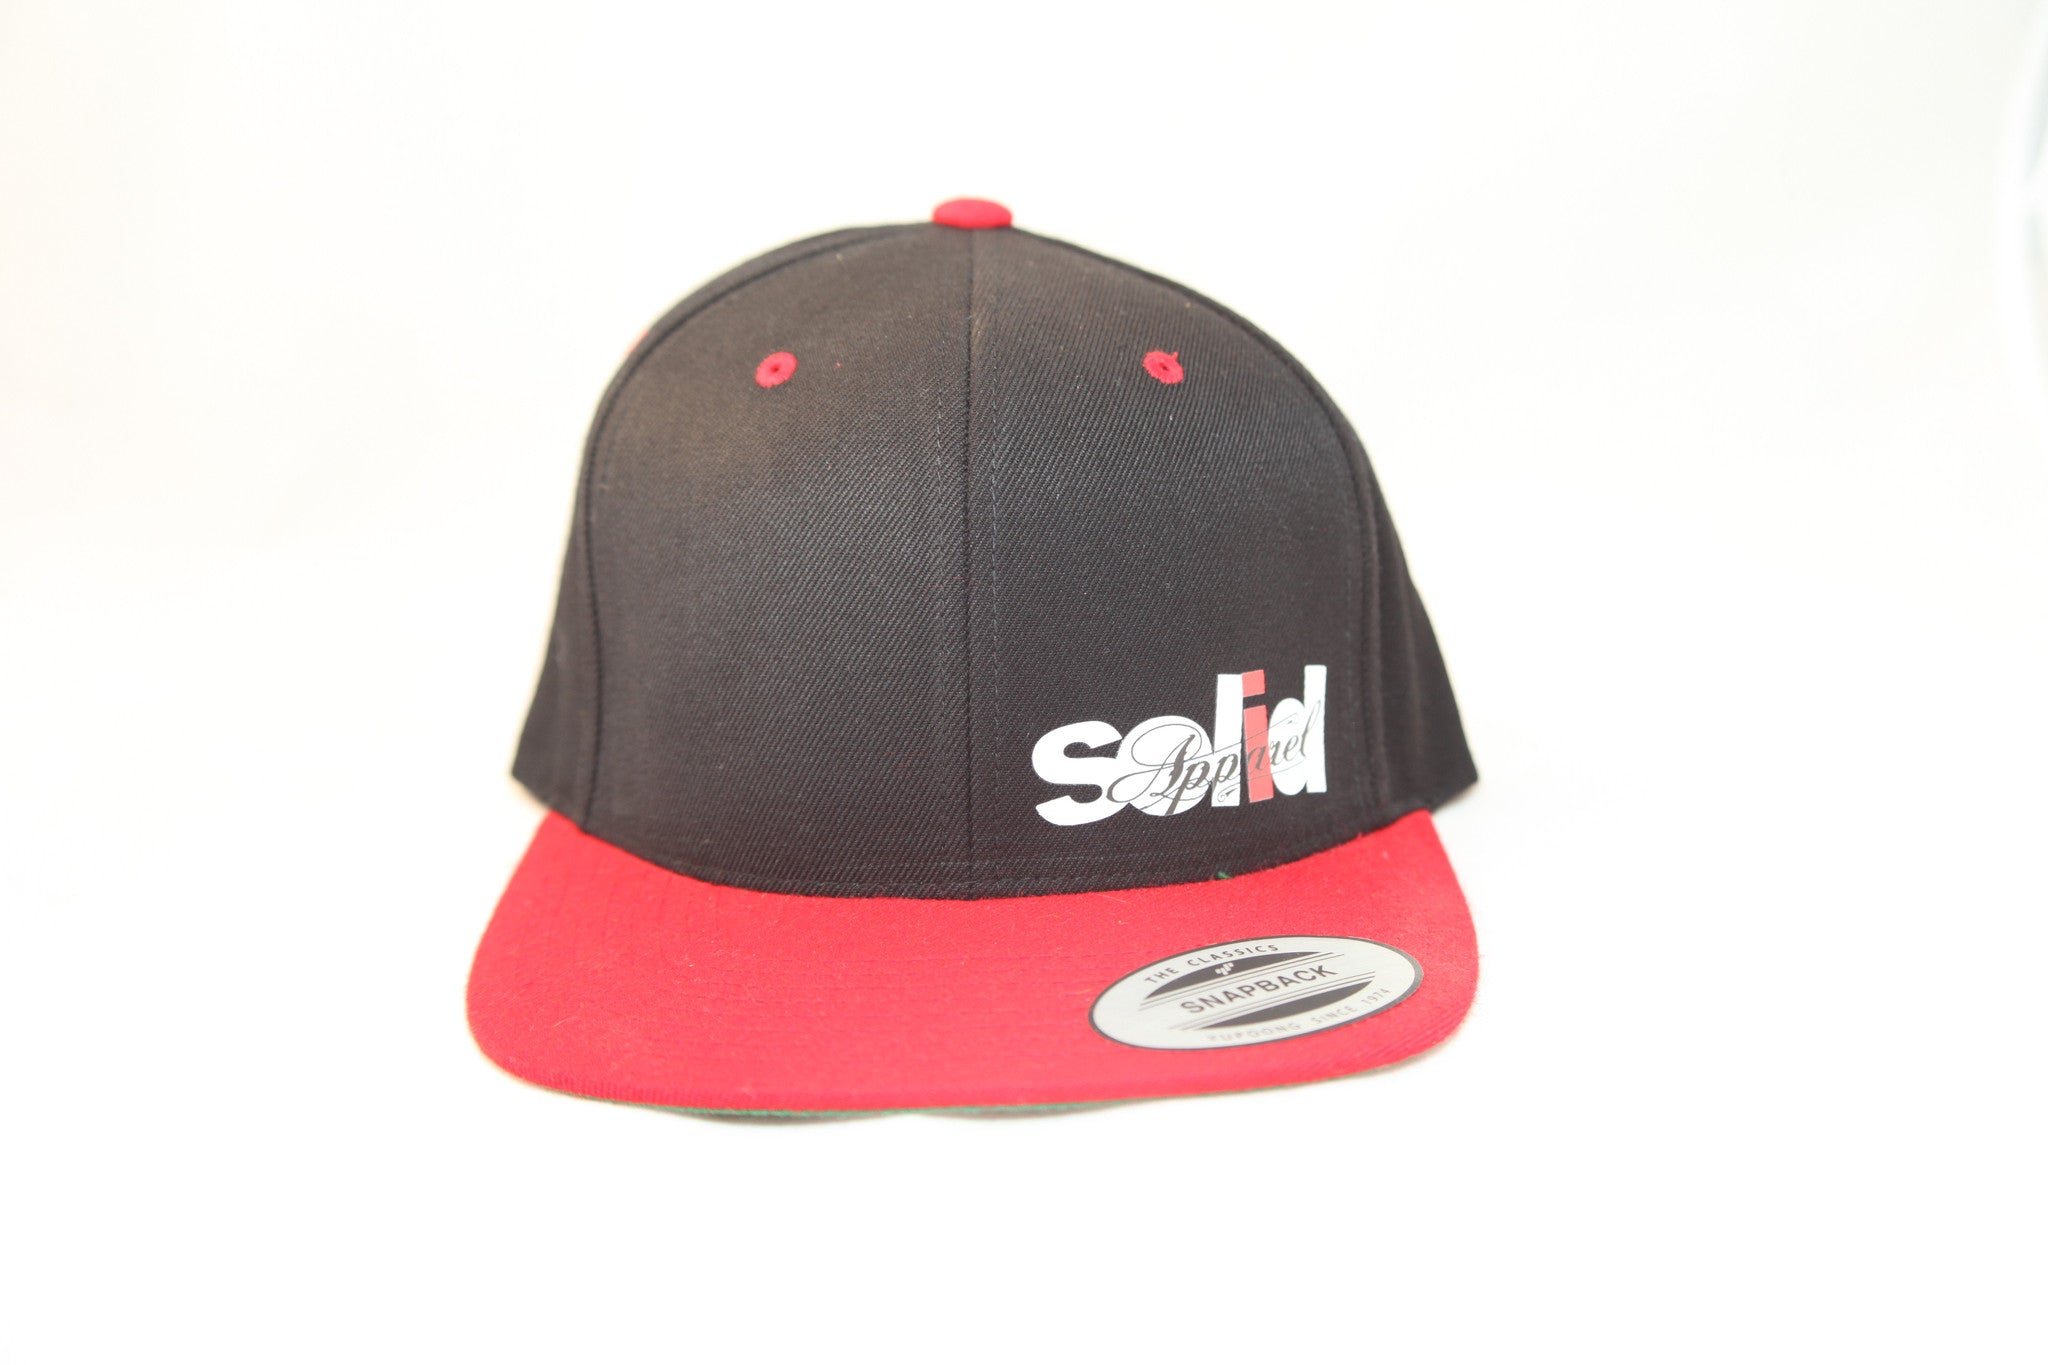 SA - FLEXFIT SNAP BACK HAT - BLACK - WHT / RED / BLK LOGO